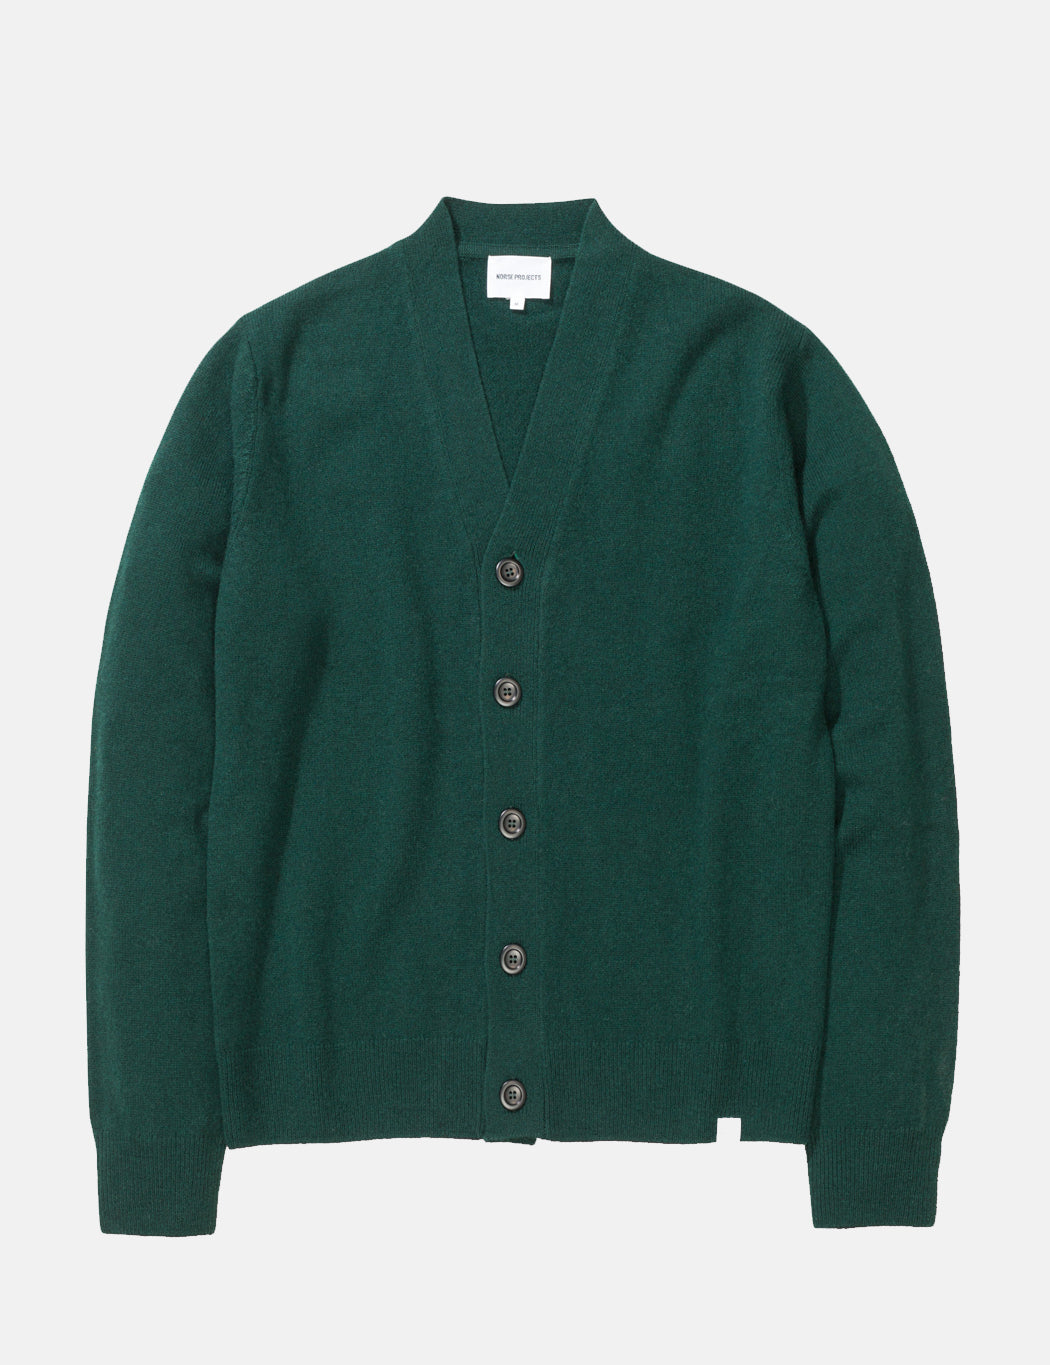 Norse Projects Adam Cardigan (Lambswool) - Green | URBAN EXCESS.